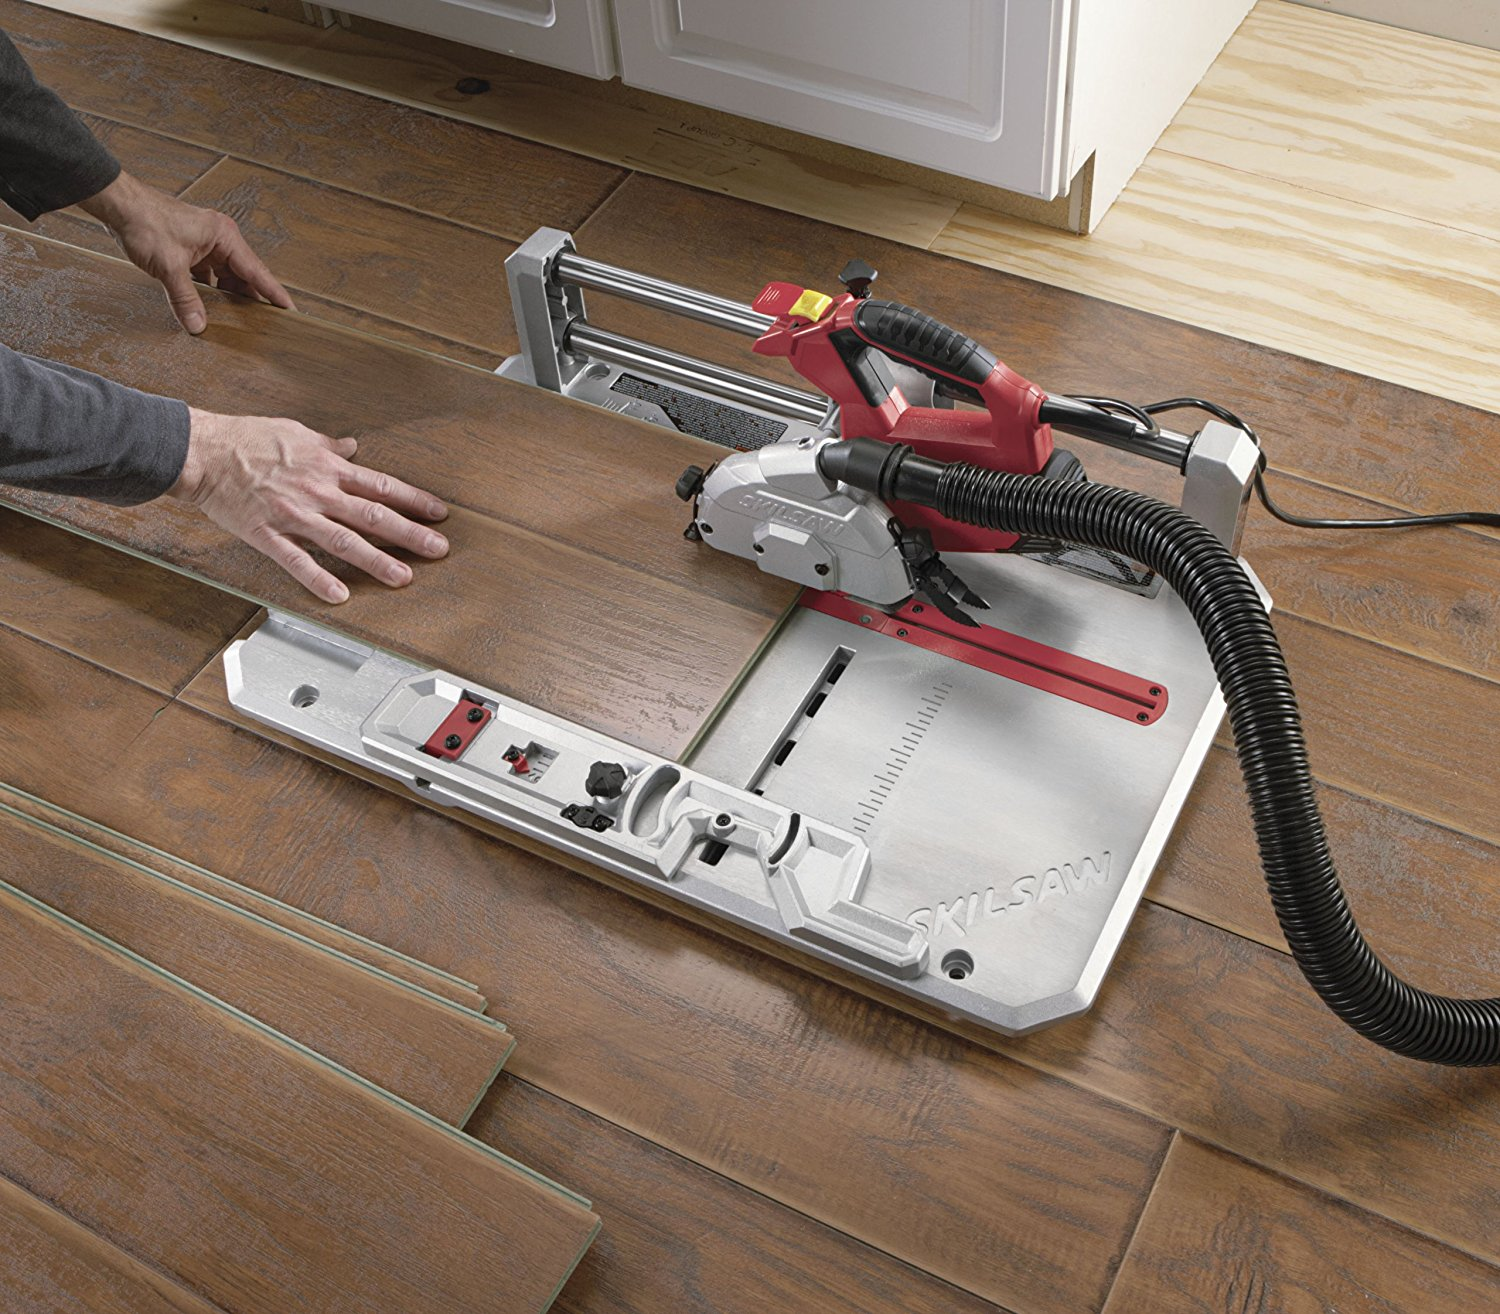 7 Best Laminate Floor Cutters That Cut